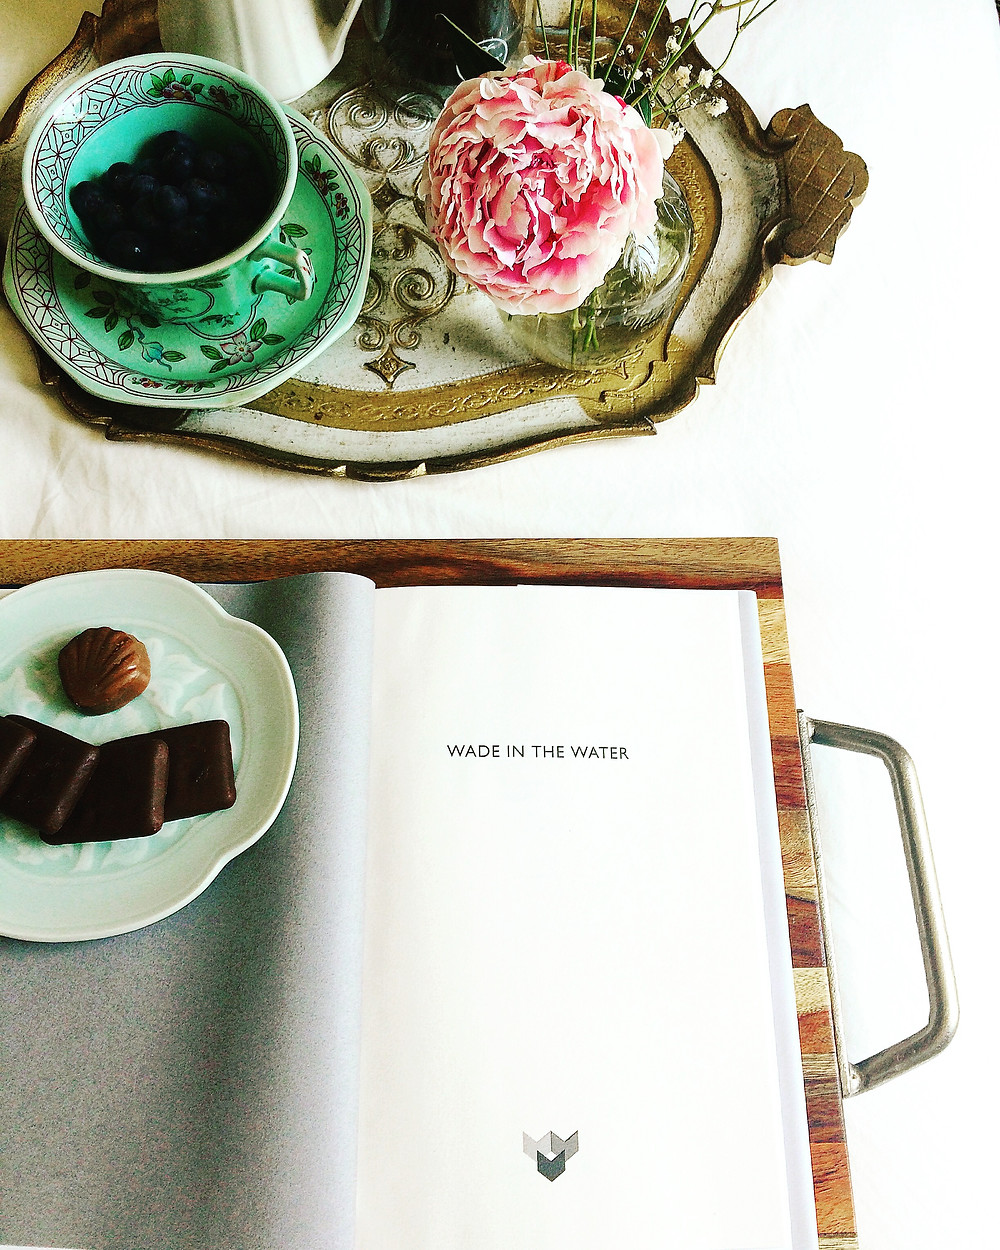 Wade in the Water by Tracy K Smith Graywolf Press